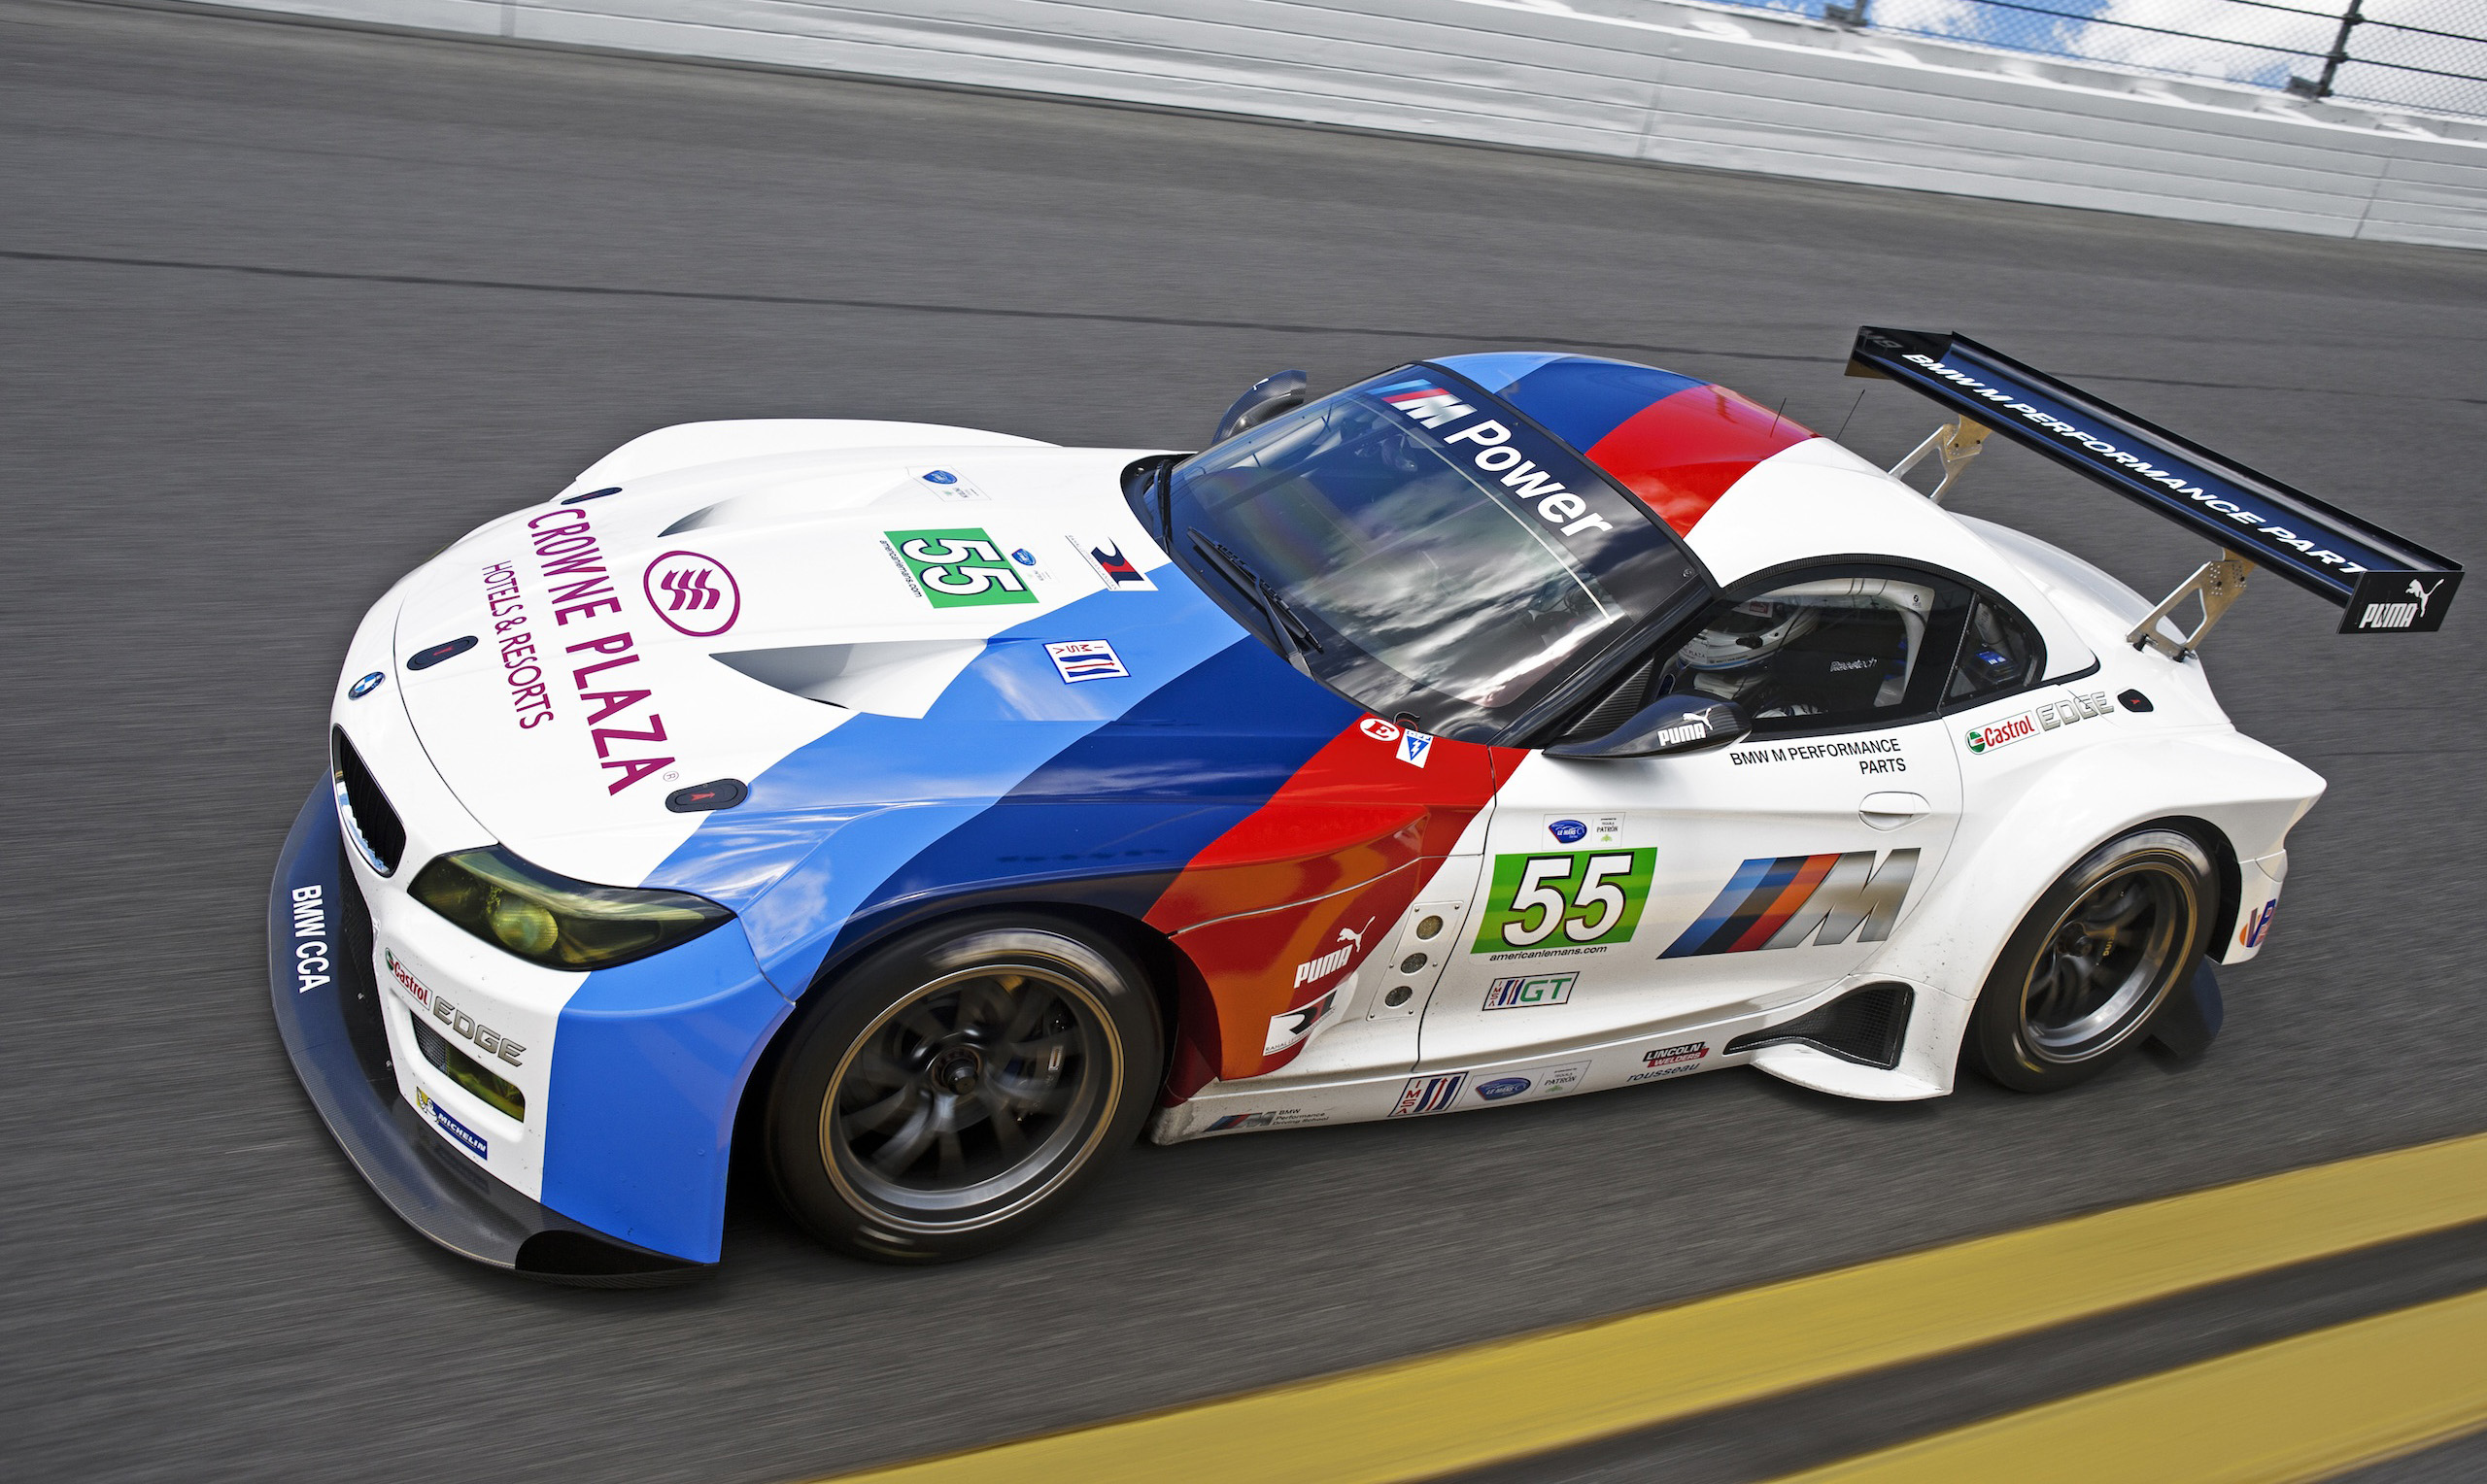 Bmw Z4 Gte Ready For Debut At 12 Hours Of Sebring This